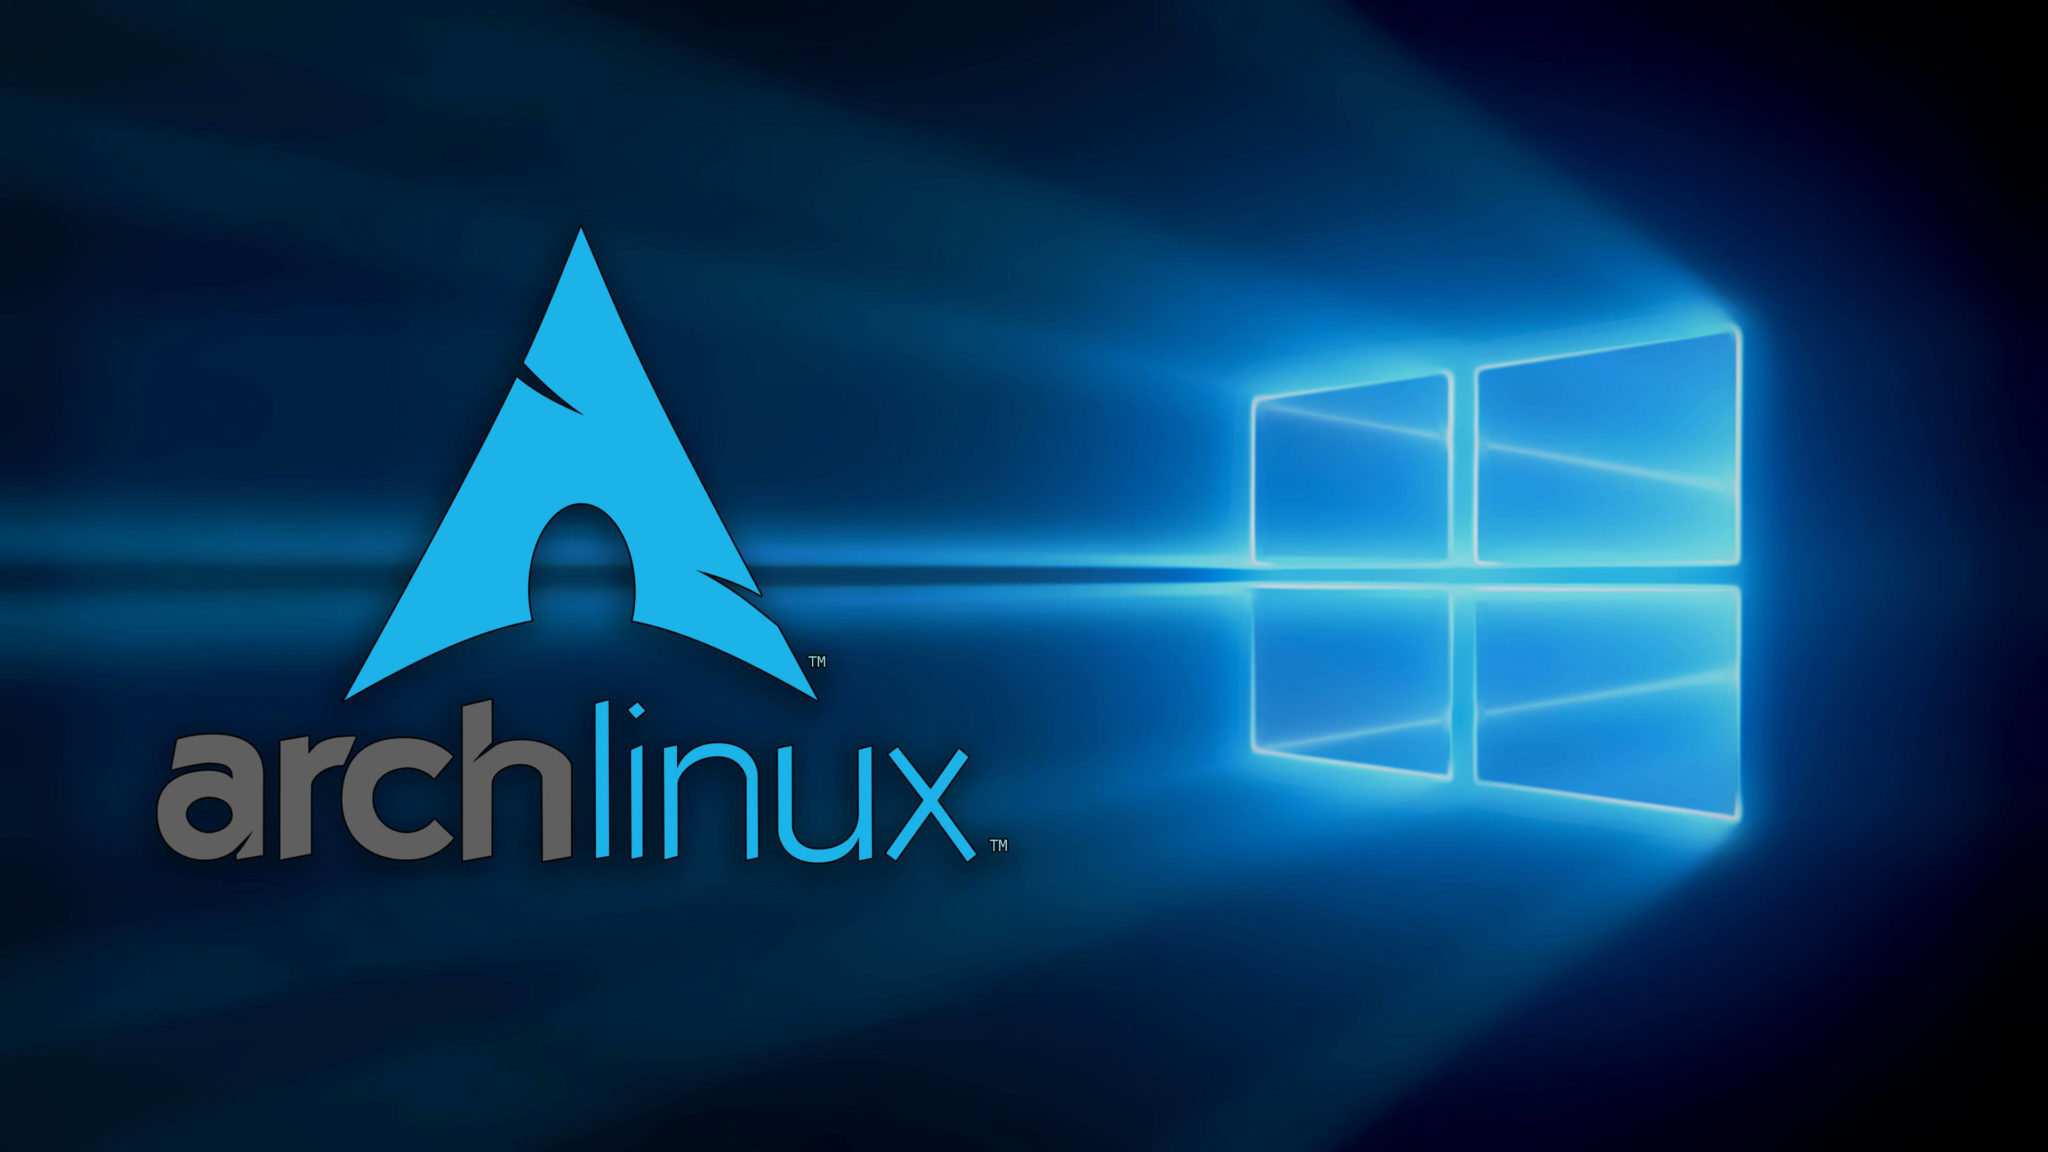 Windows 10 Gets Arch Linux One Of The Trickiest Distros Around Miltonmarketing Com